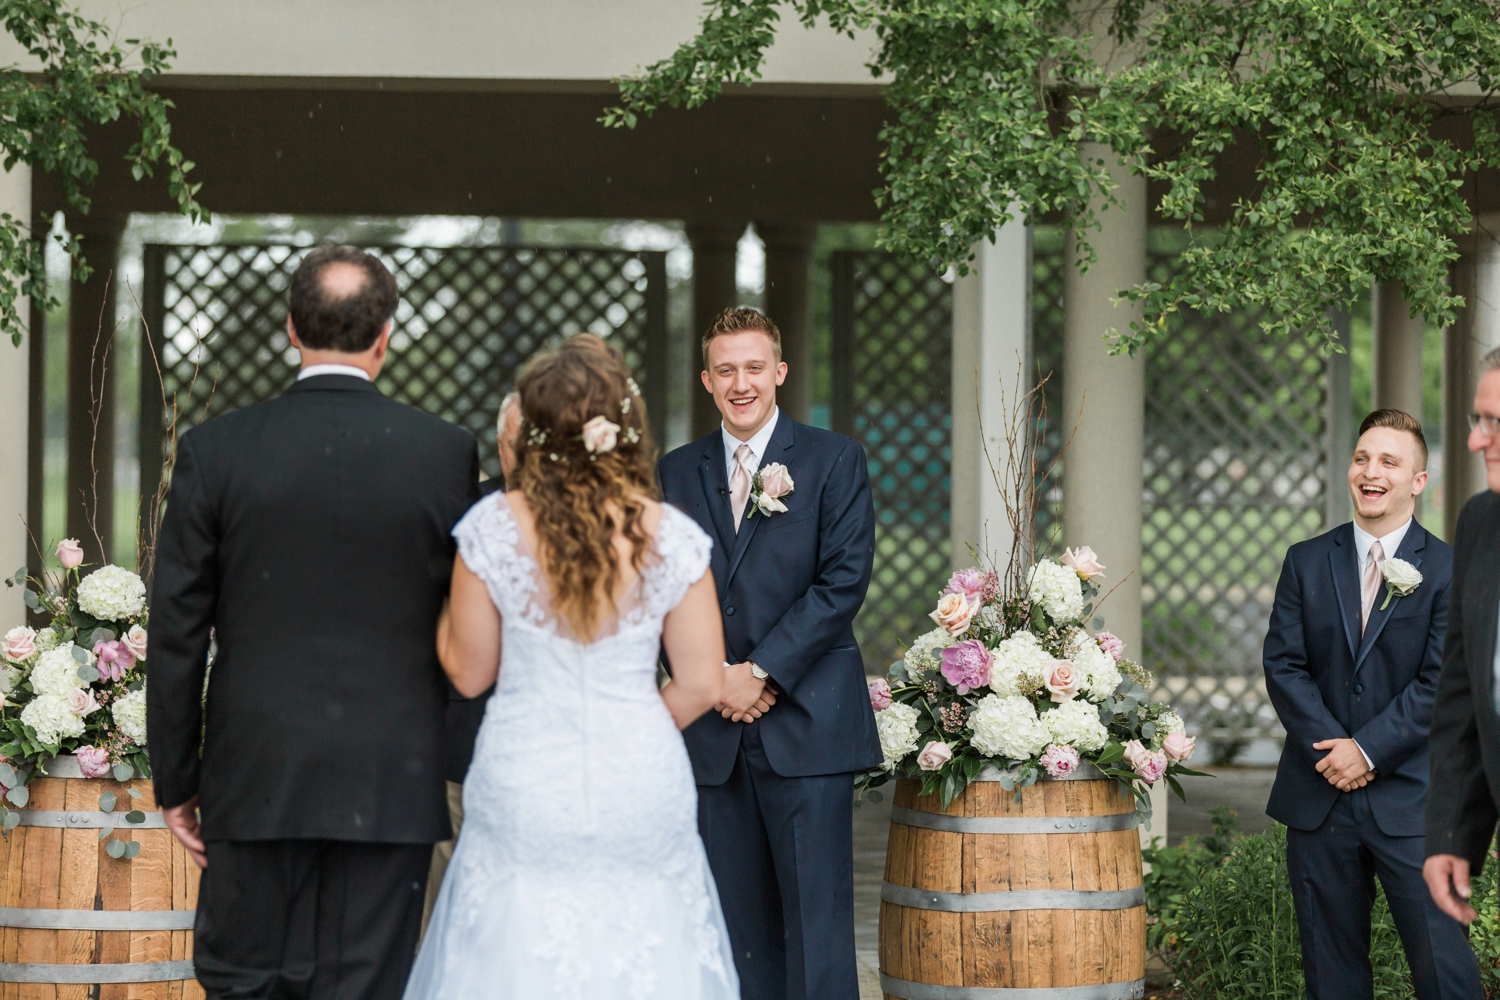 Community_Life_Center_Indianapolis_Indiana_Wedding_Photographer_Chloe_Luka_Photography_6948.jpg